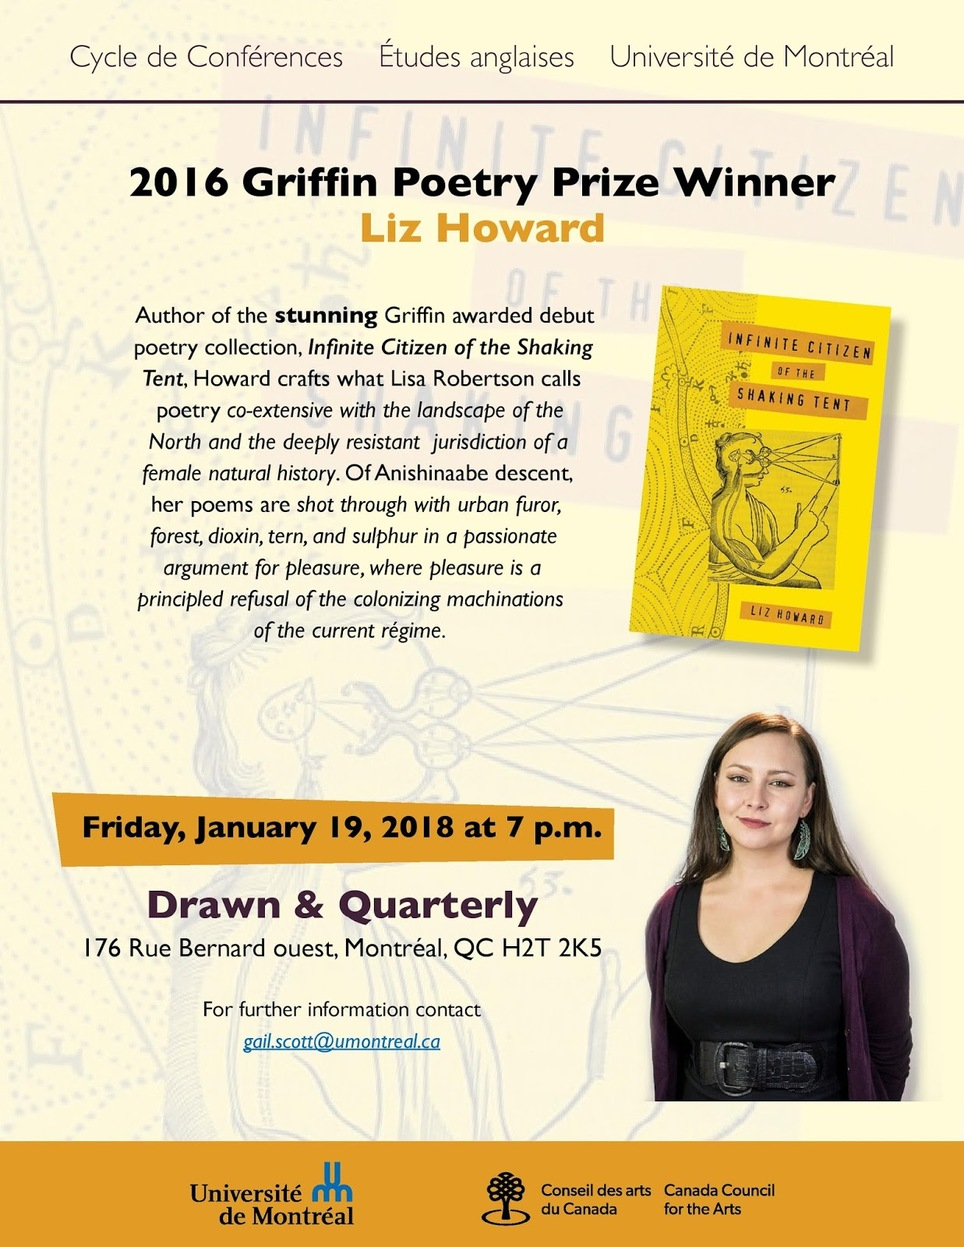 *TONIGHT* Liz Howard Poetry Reading